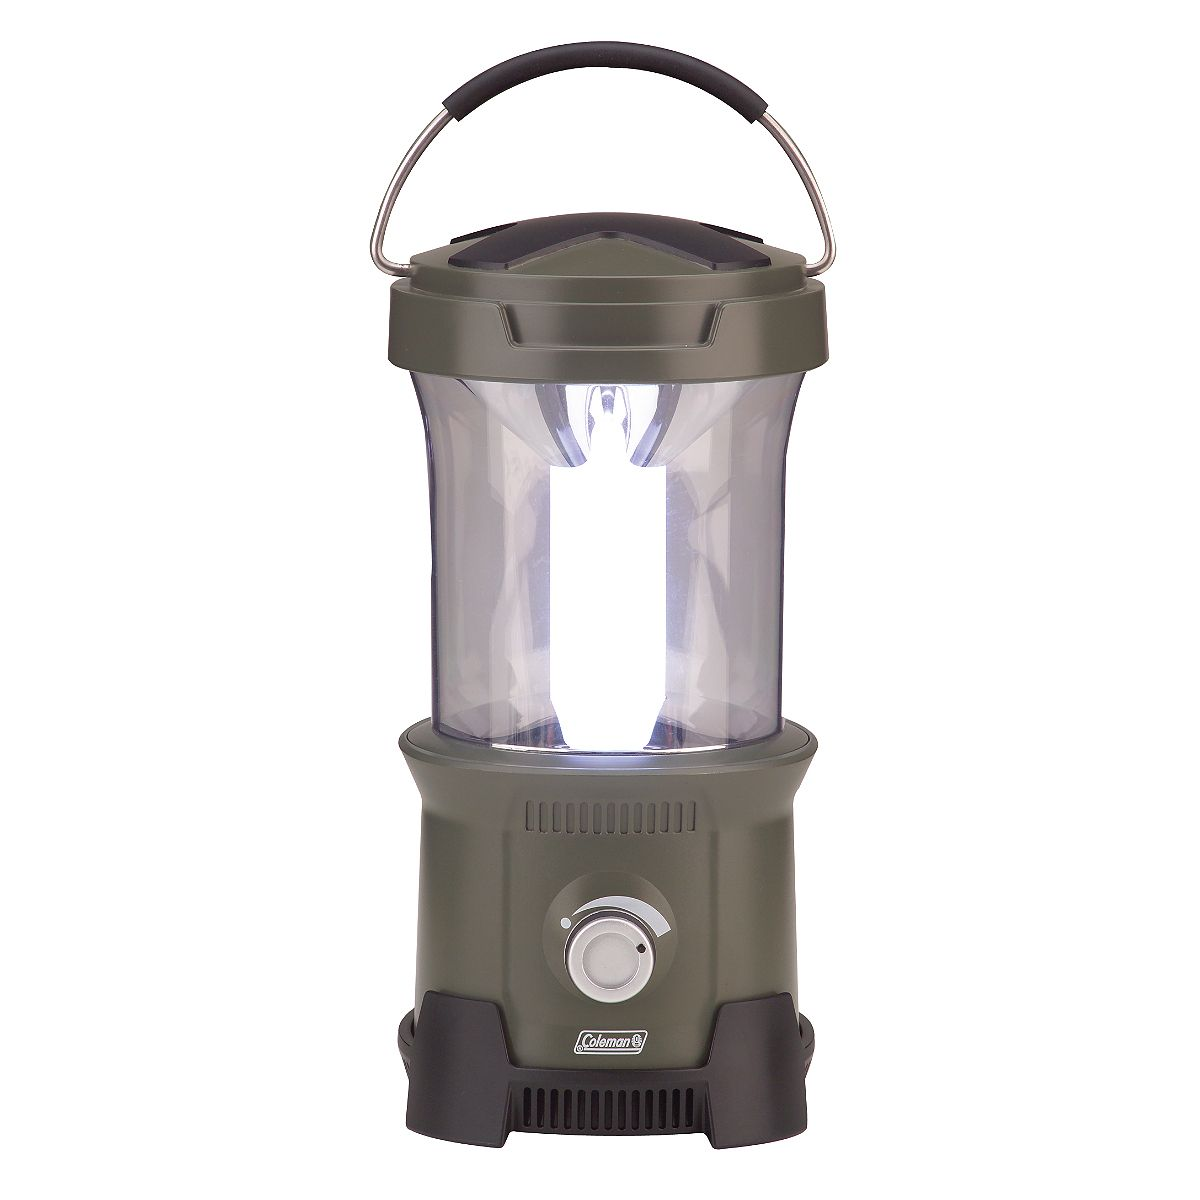 CPX 6 High Tech LED Lantern